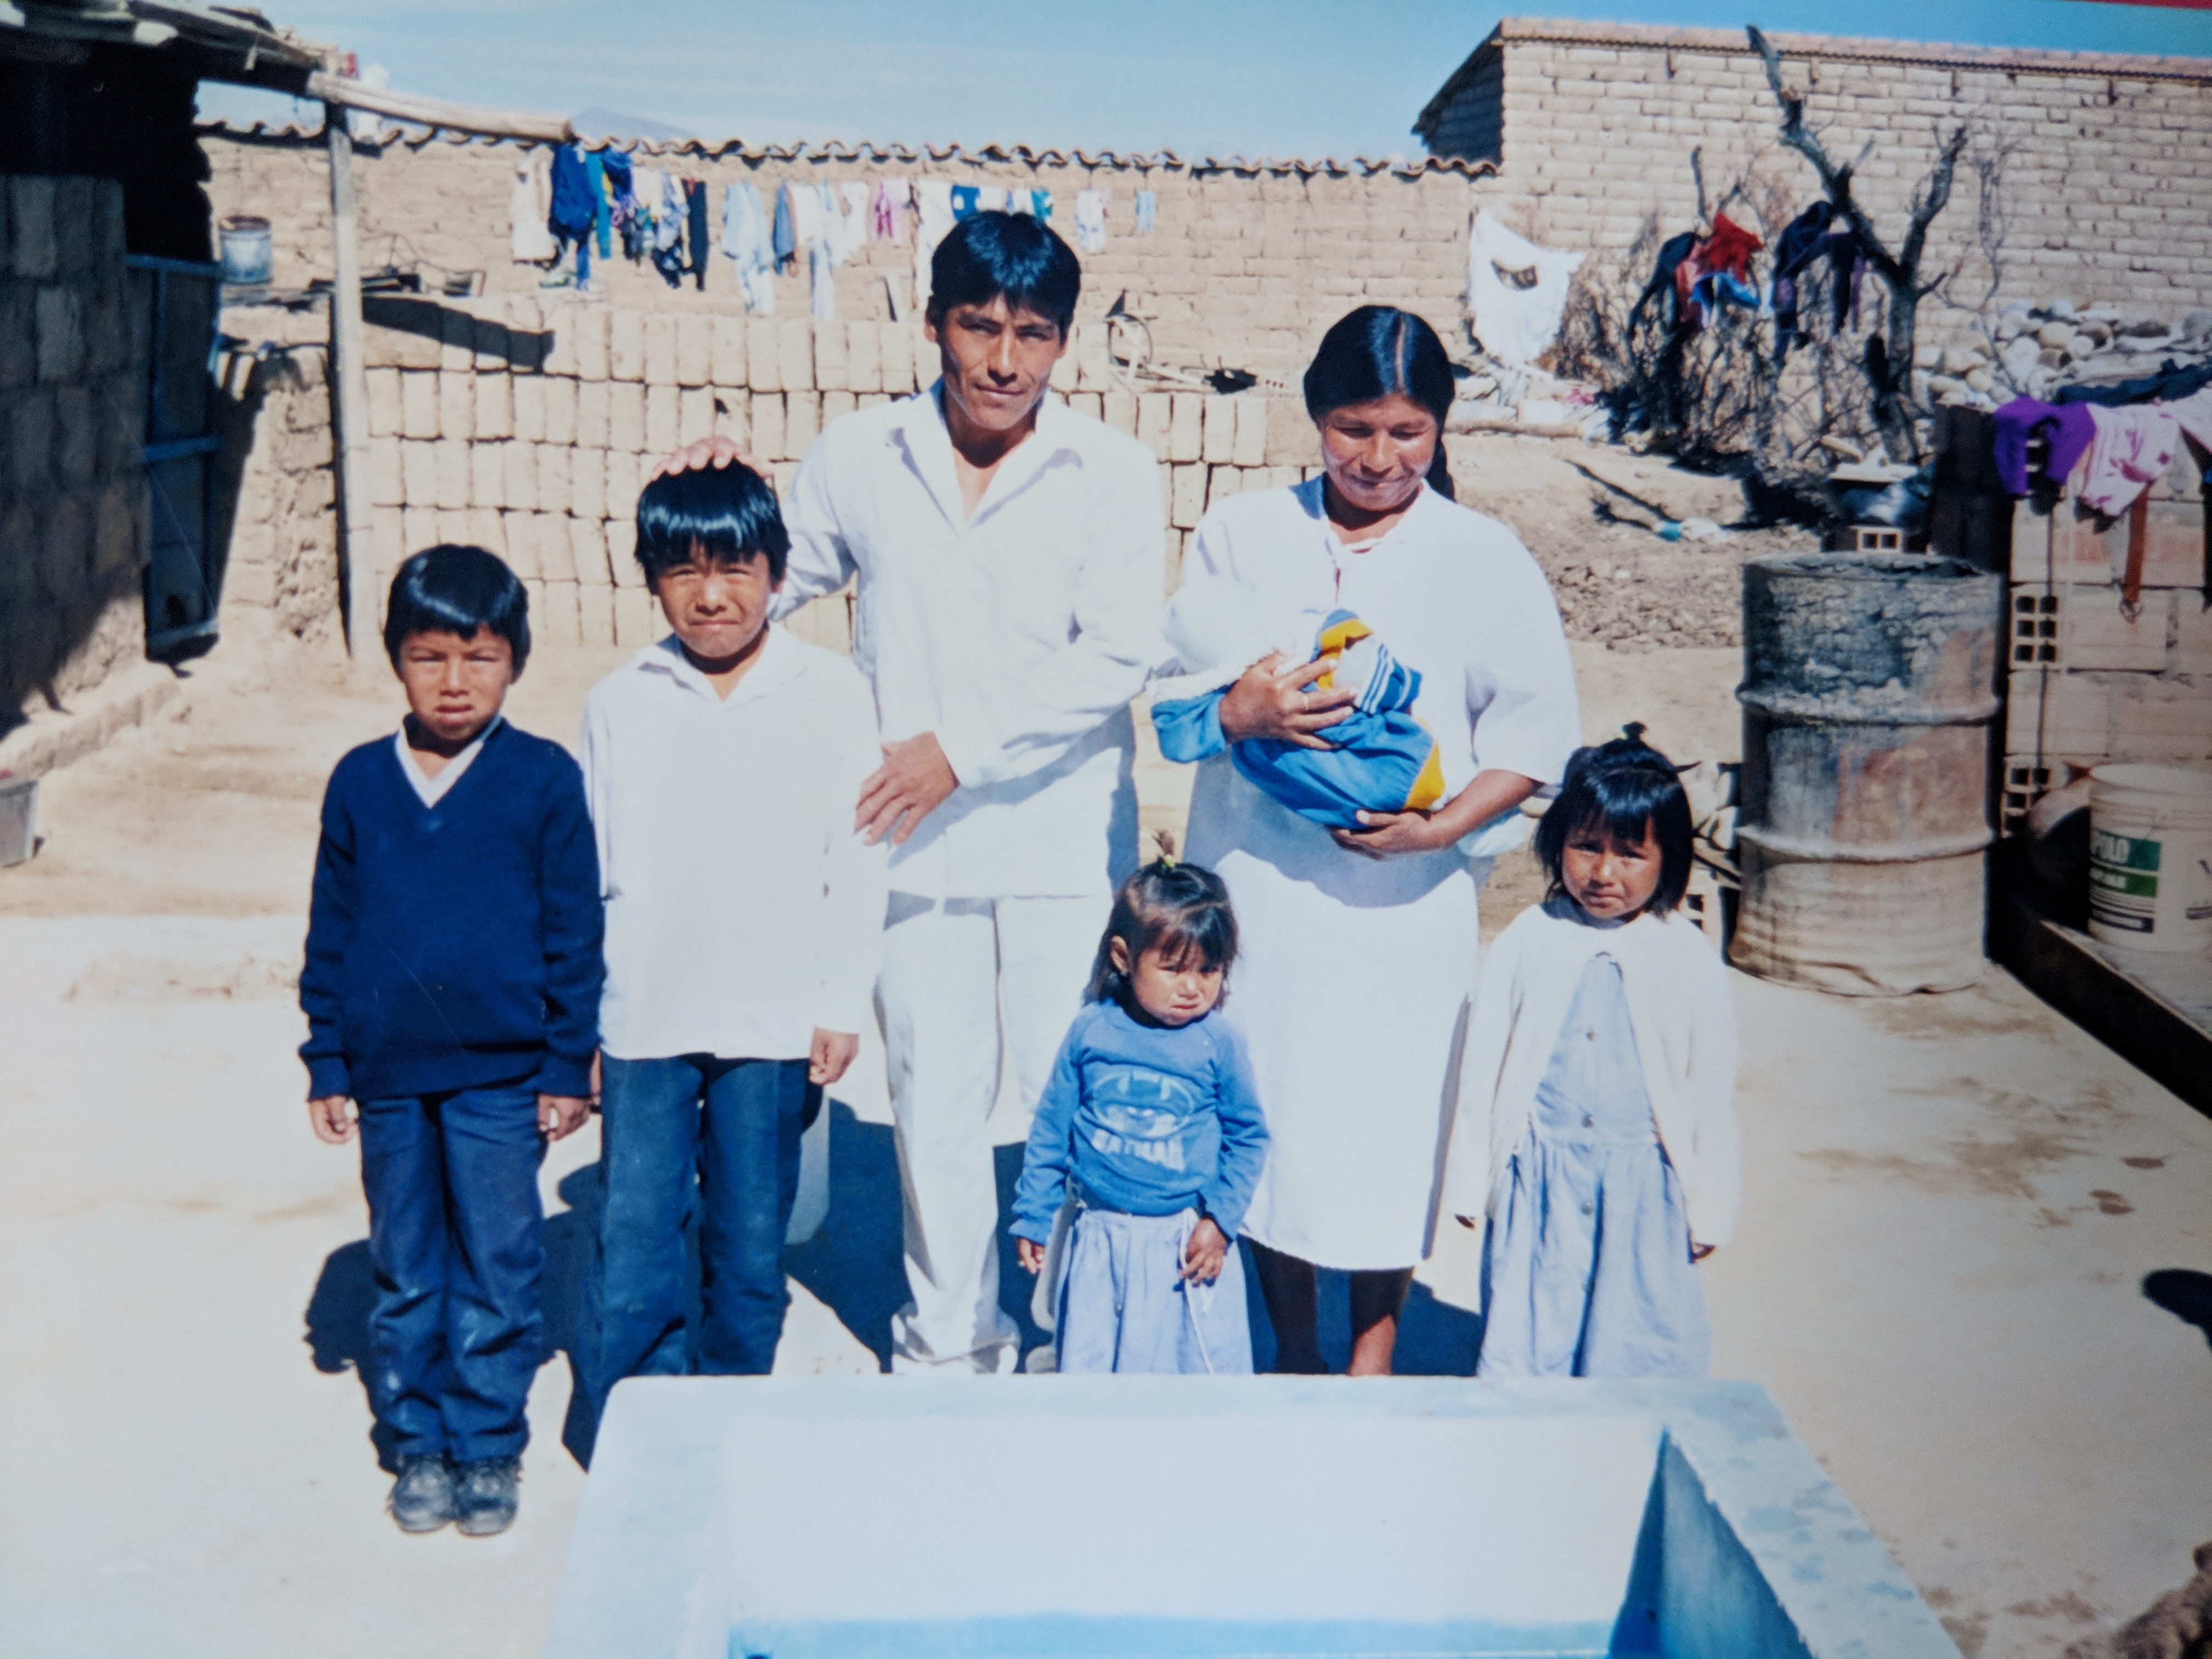 The Quispe family on their baptism day 20 years ago. They cleaned and painted a concrete pit in their front yard for their baptism.